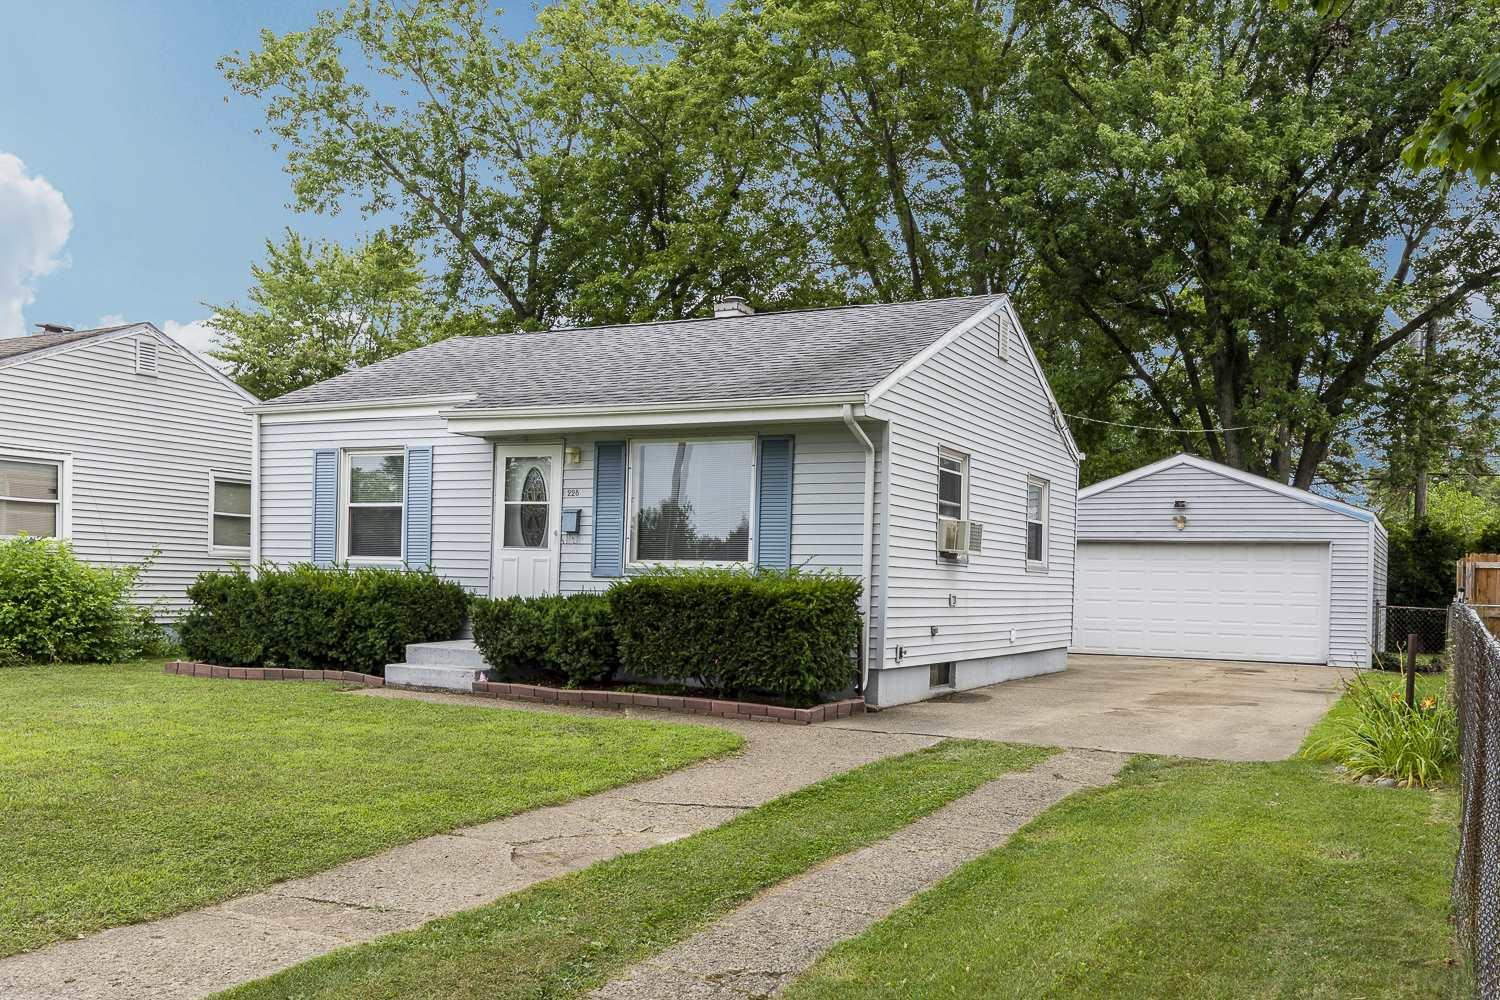 228 N Edison South Bend, IN 46619